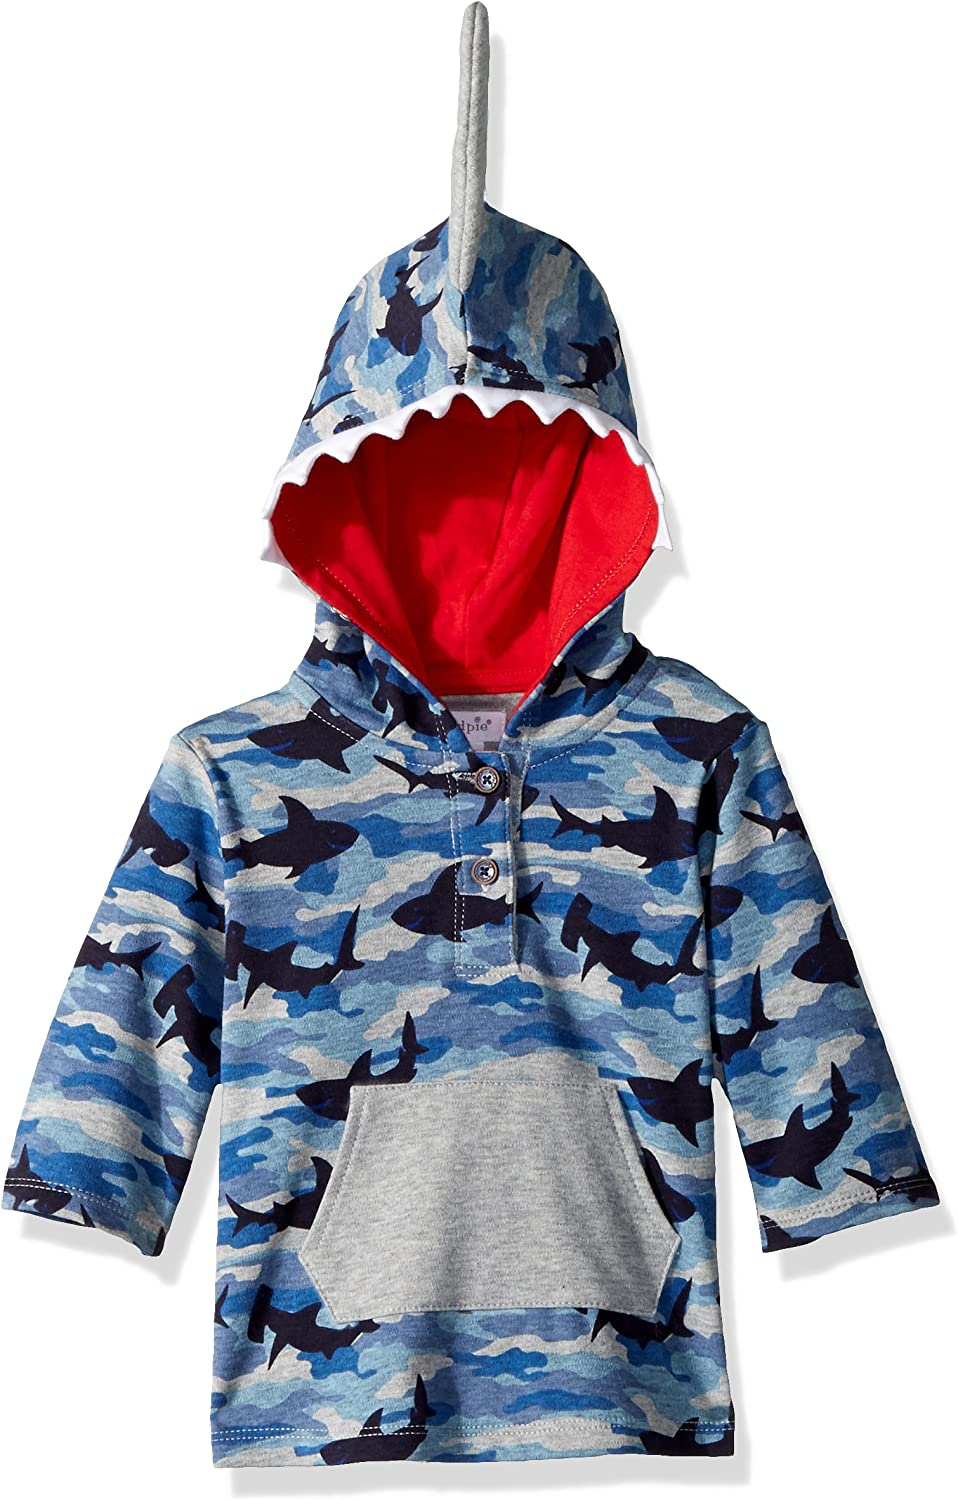 Mud Pie Boys' Baby Camo Shark Hooded Swimsuit Cover Up, Blue, SM/ 12-24 MOS